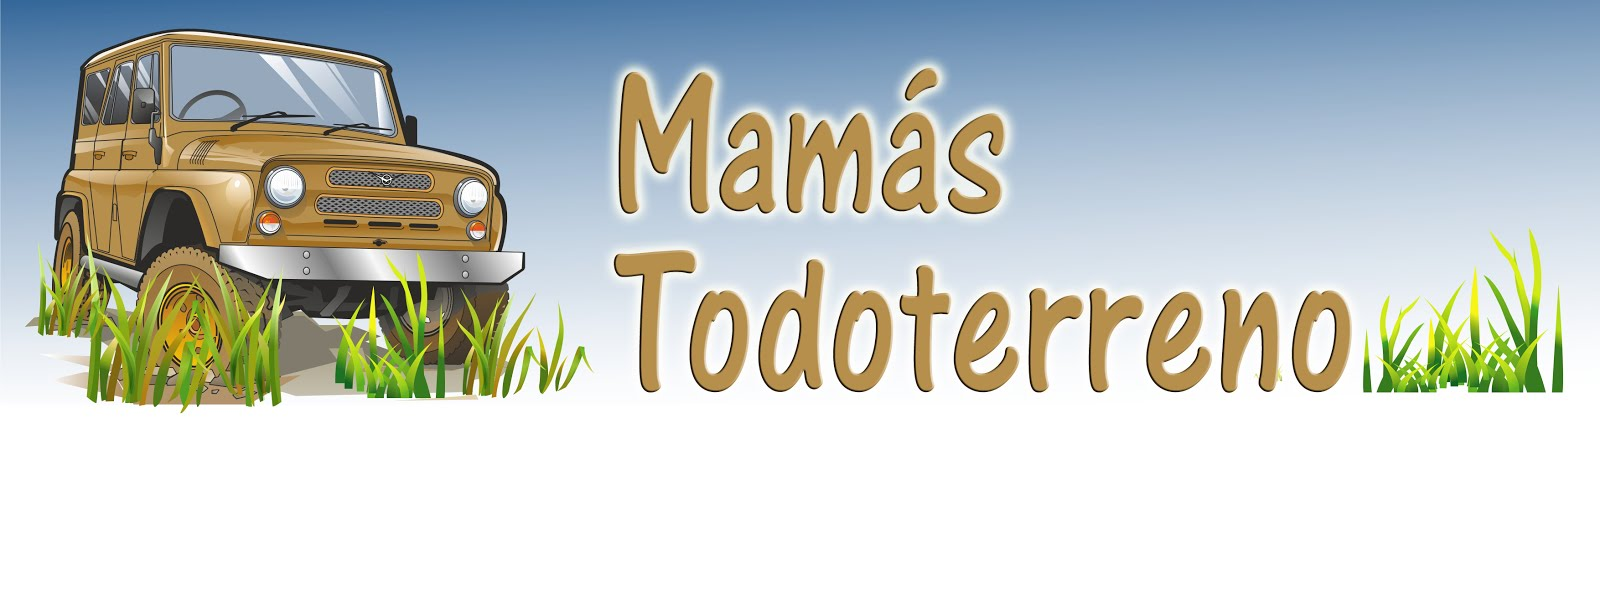 Mams  Todoterreno